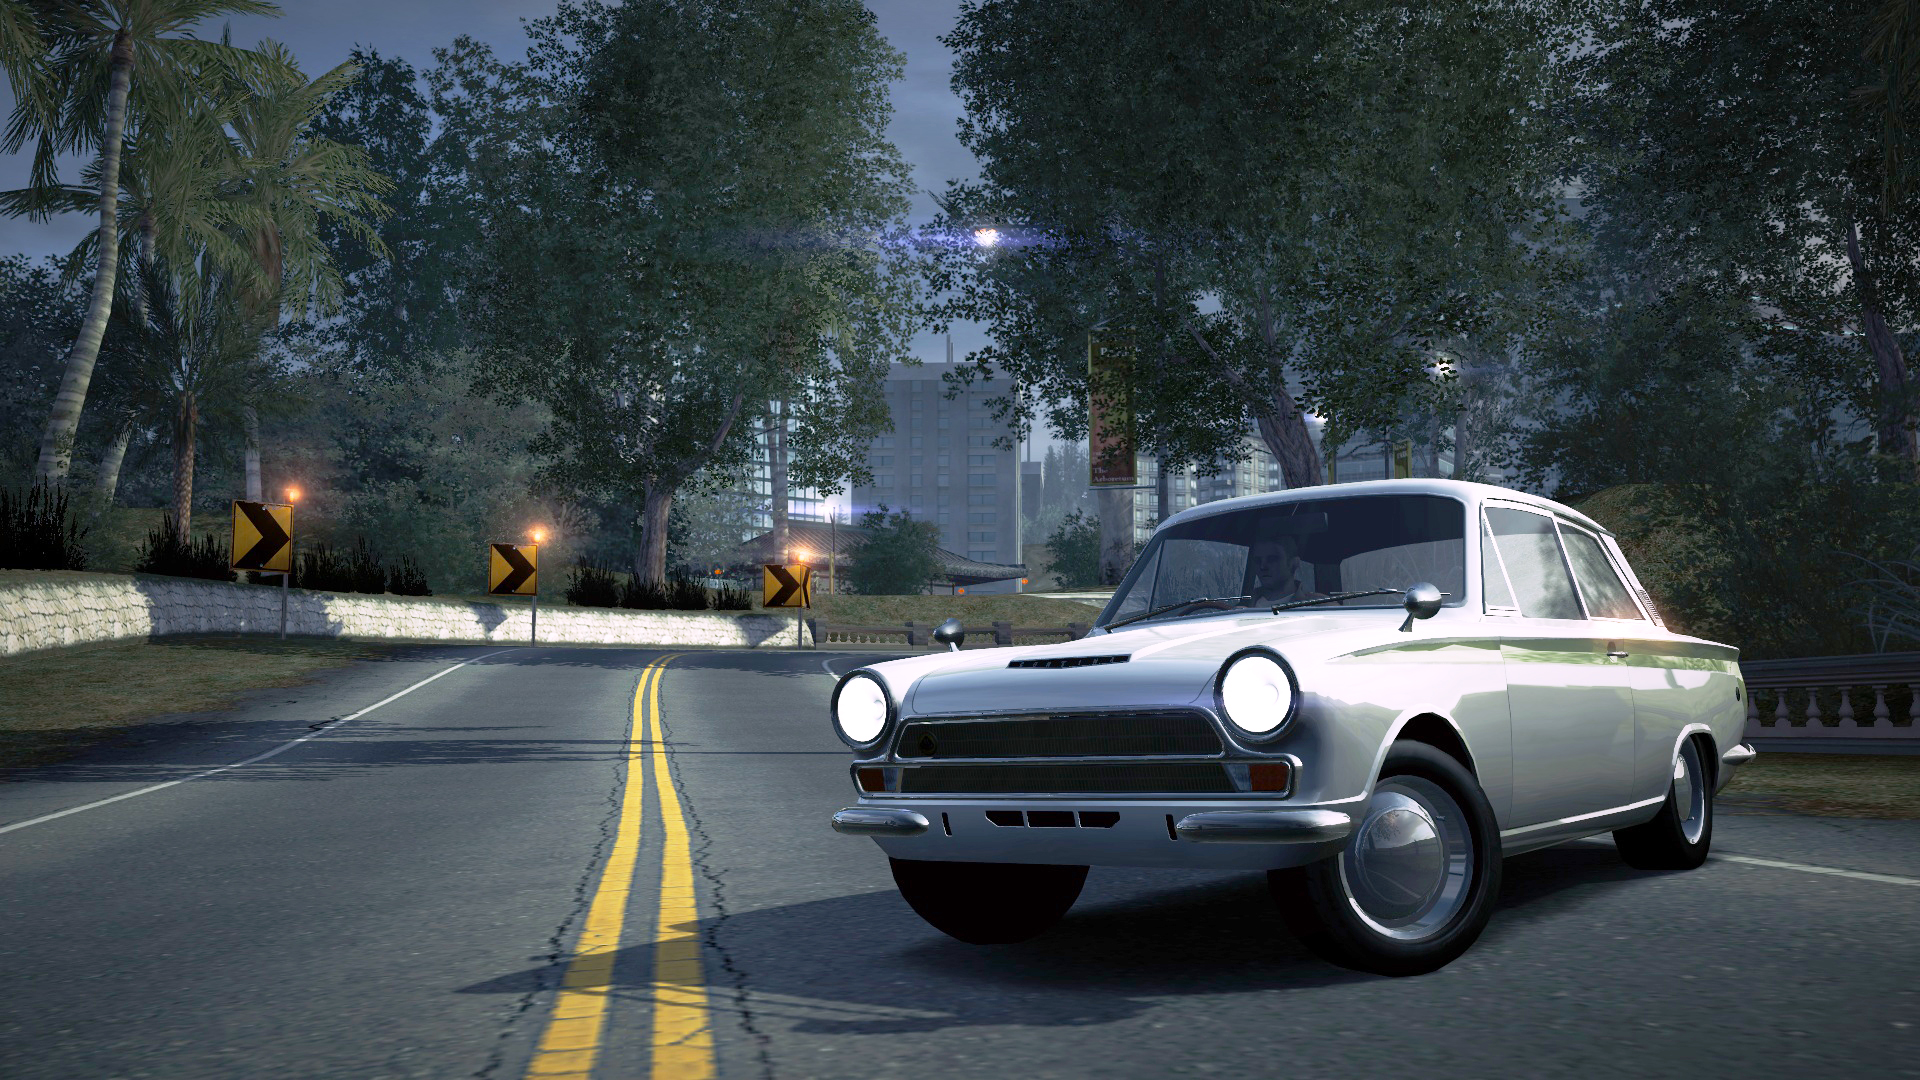 ford lotus cortina nfs world wiki fandom powered by wikia. Black Bedroom Furniture Sets. Home Design Ideas